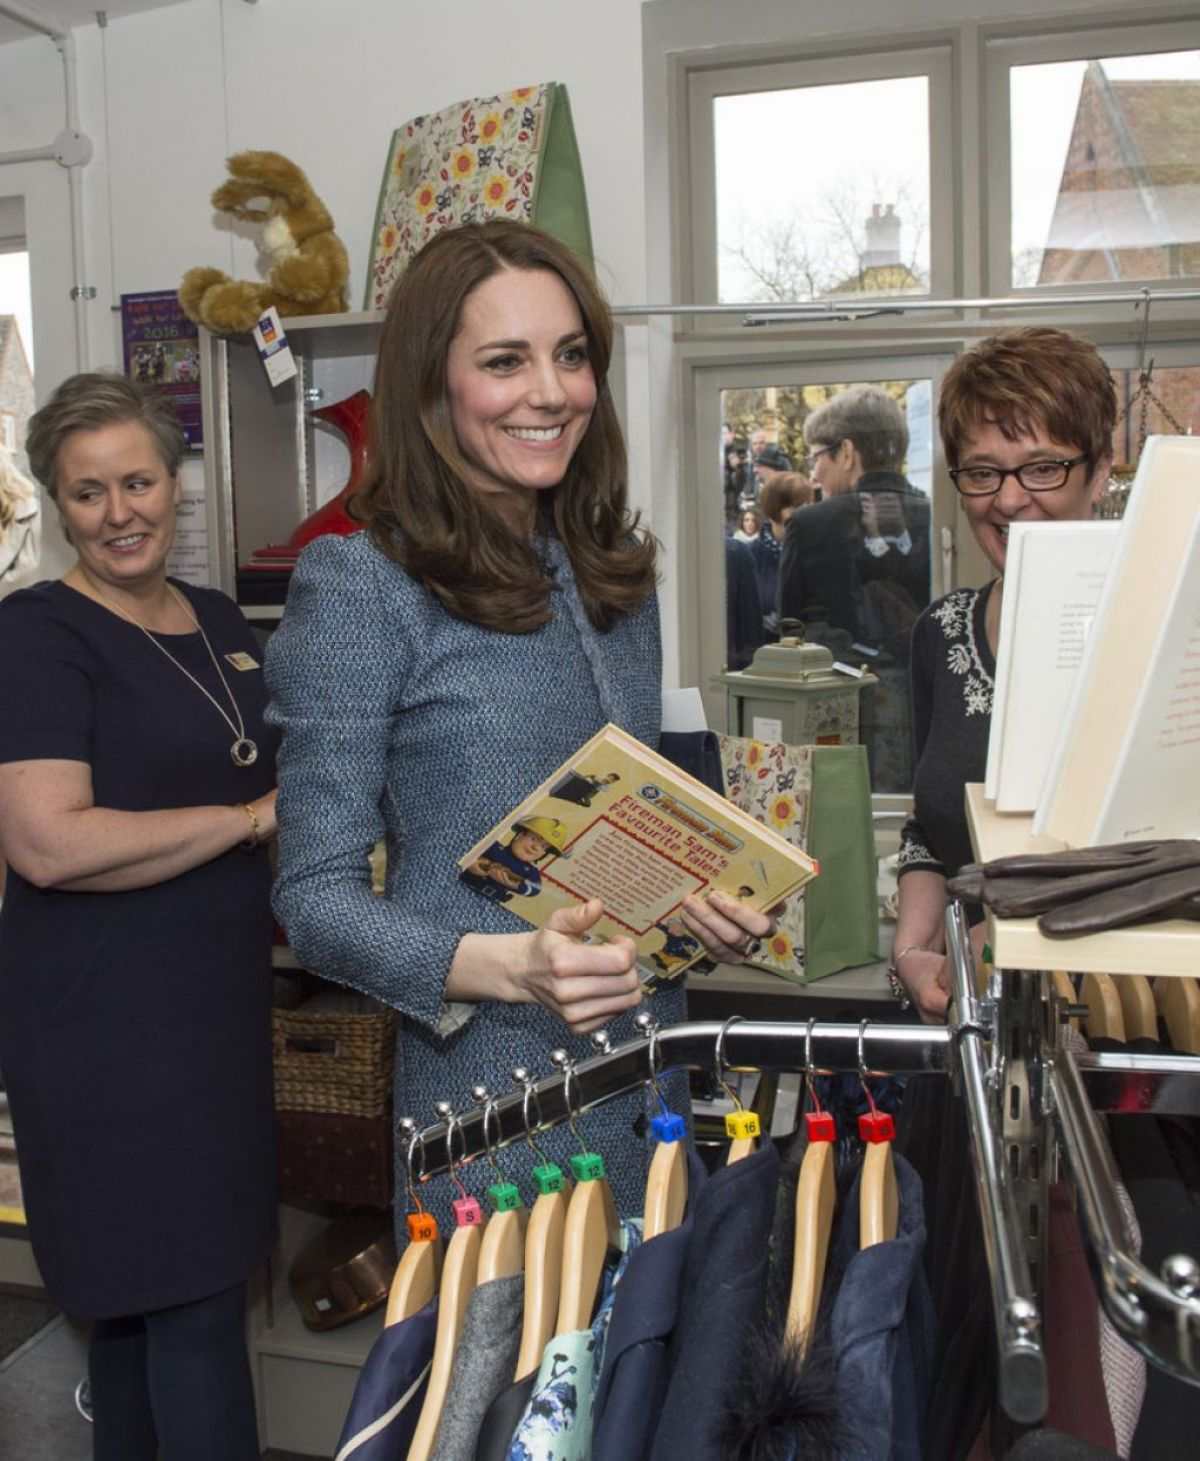 Forum on this topic: Charity shop where Catherine Middleton and the , charity-shop-where-catherine-middleton-and-the/